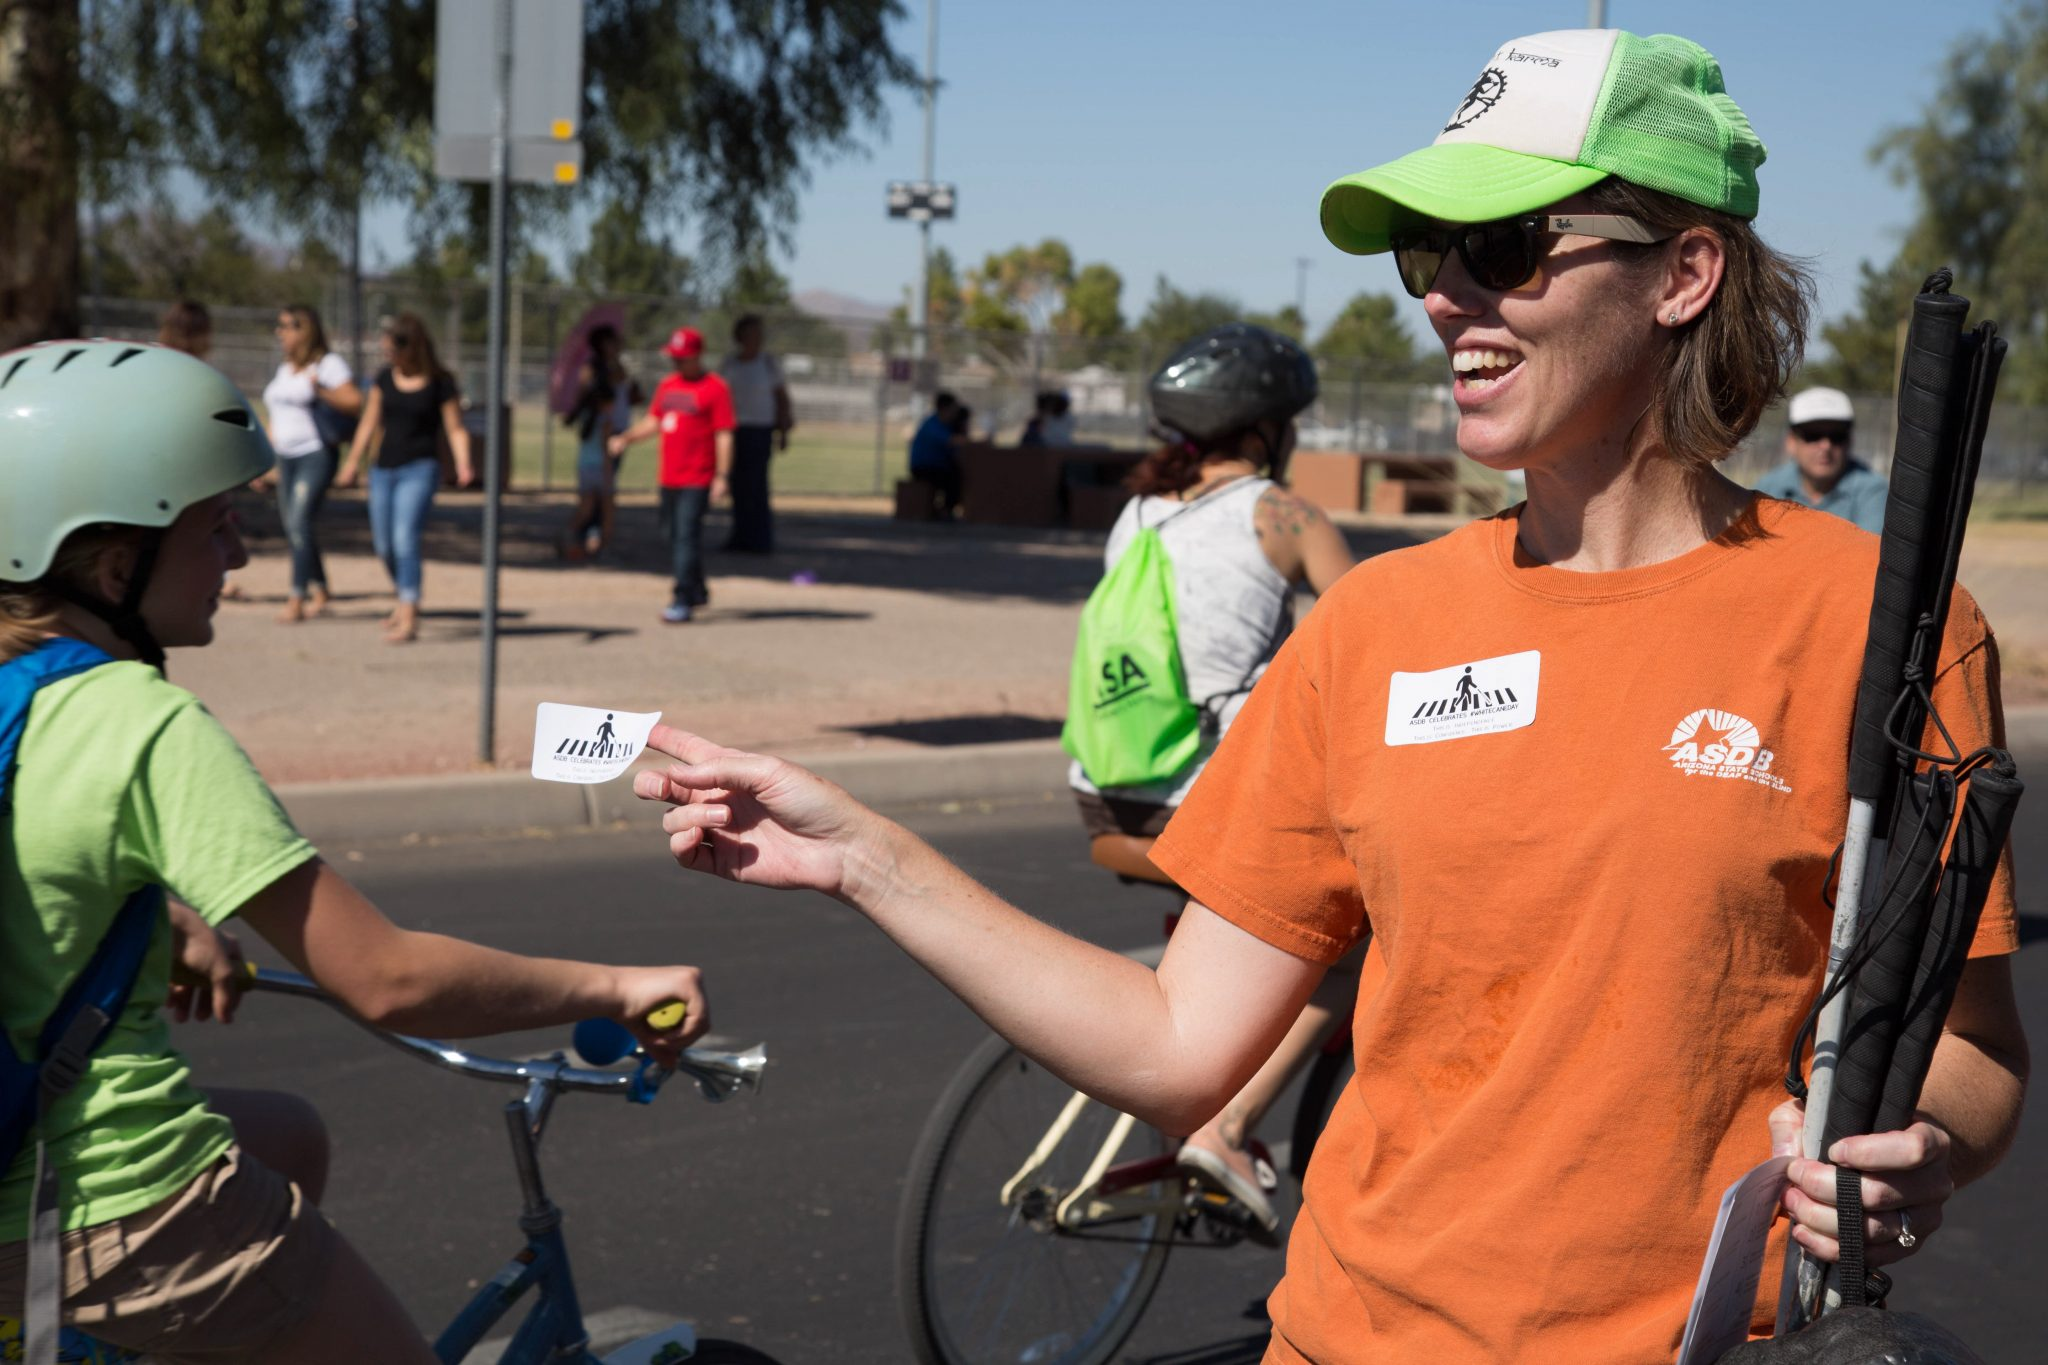 A volunteer hands out a race badge